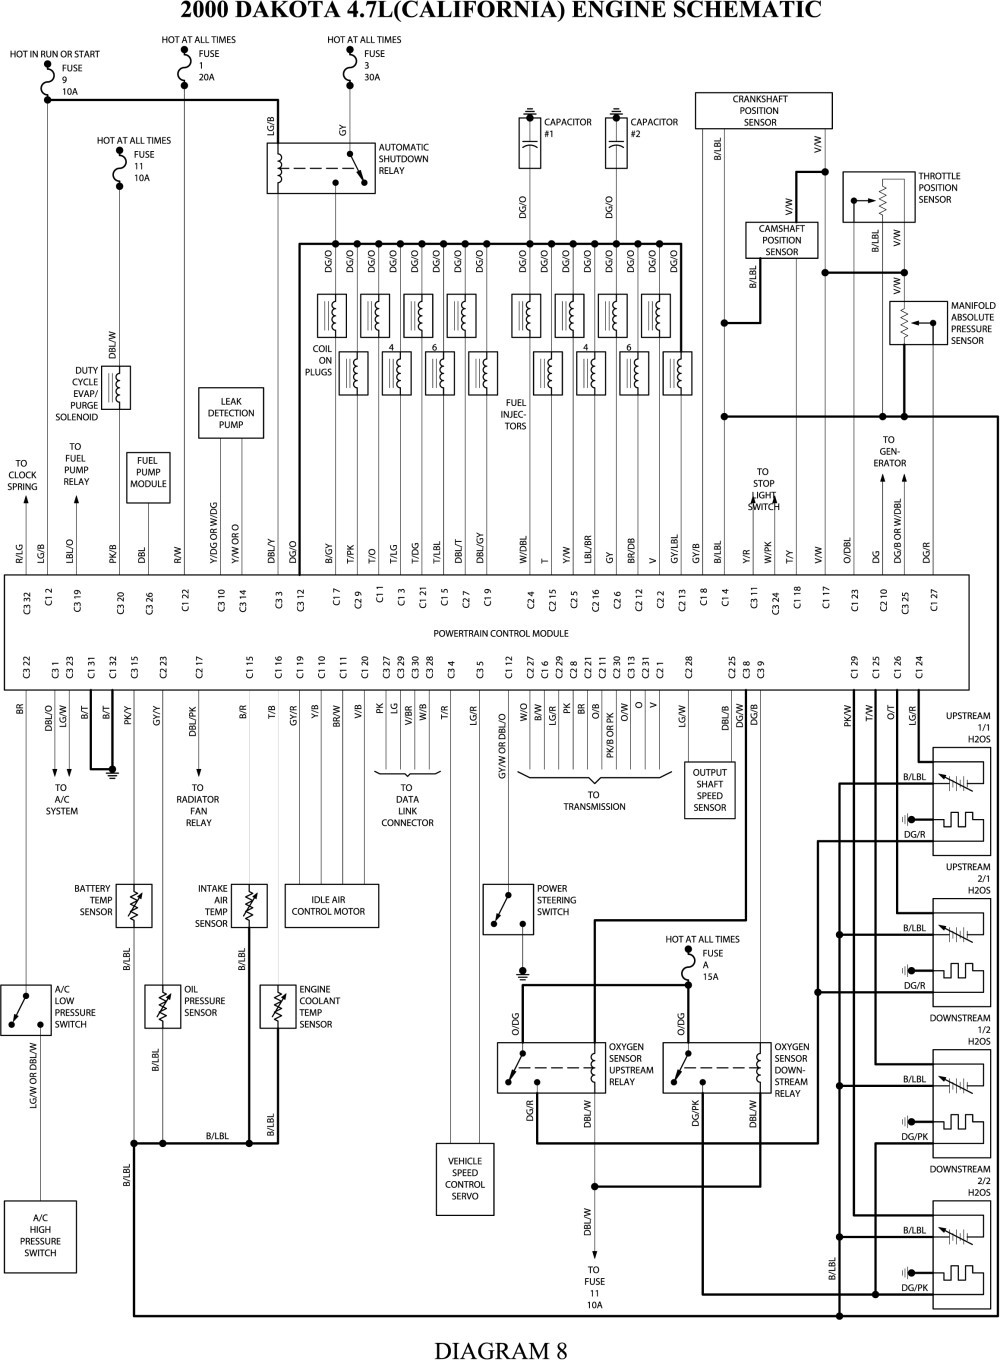 WRG-1374] Kenworth T800 Ecm Wiring Diagram on wiring-diagram kenworth t2000, wiring-diagram nissan tiida, wiring-diagram kenworth t800,